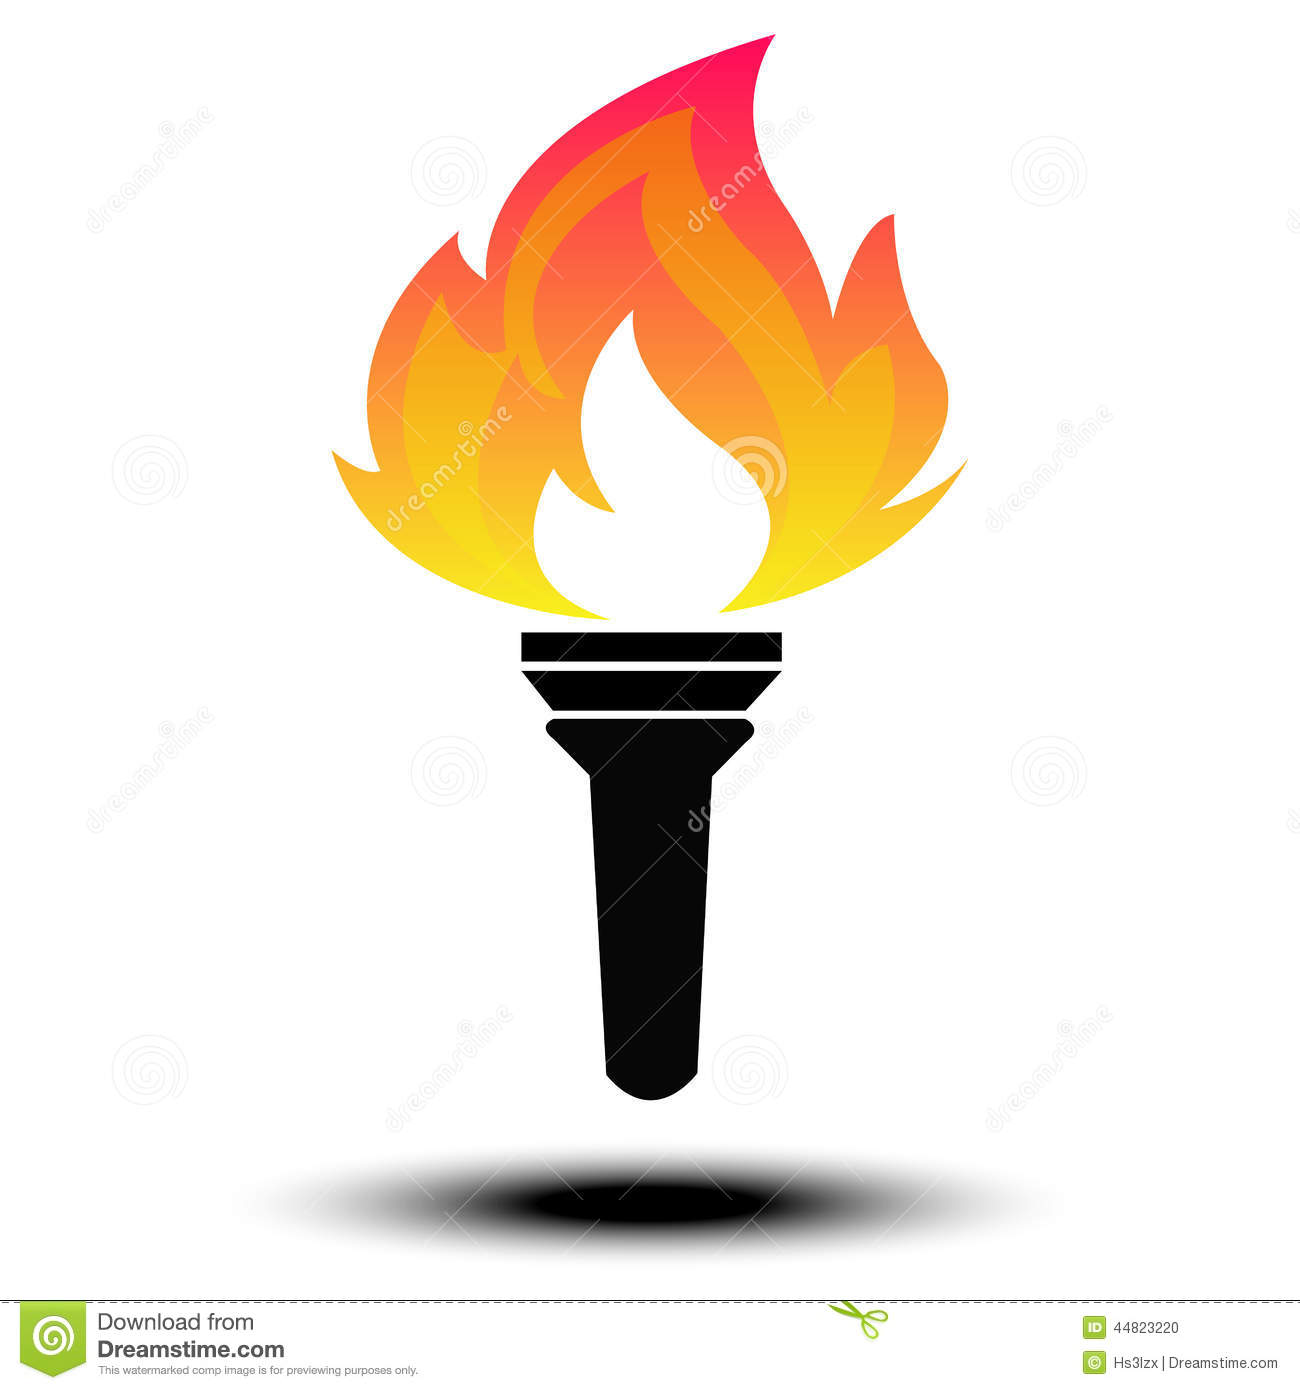 Torch Vector Stock Vector Image 44823220